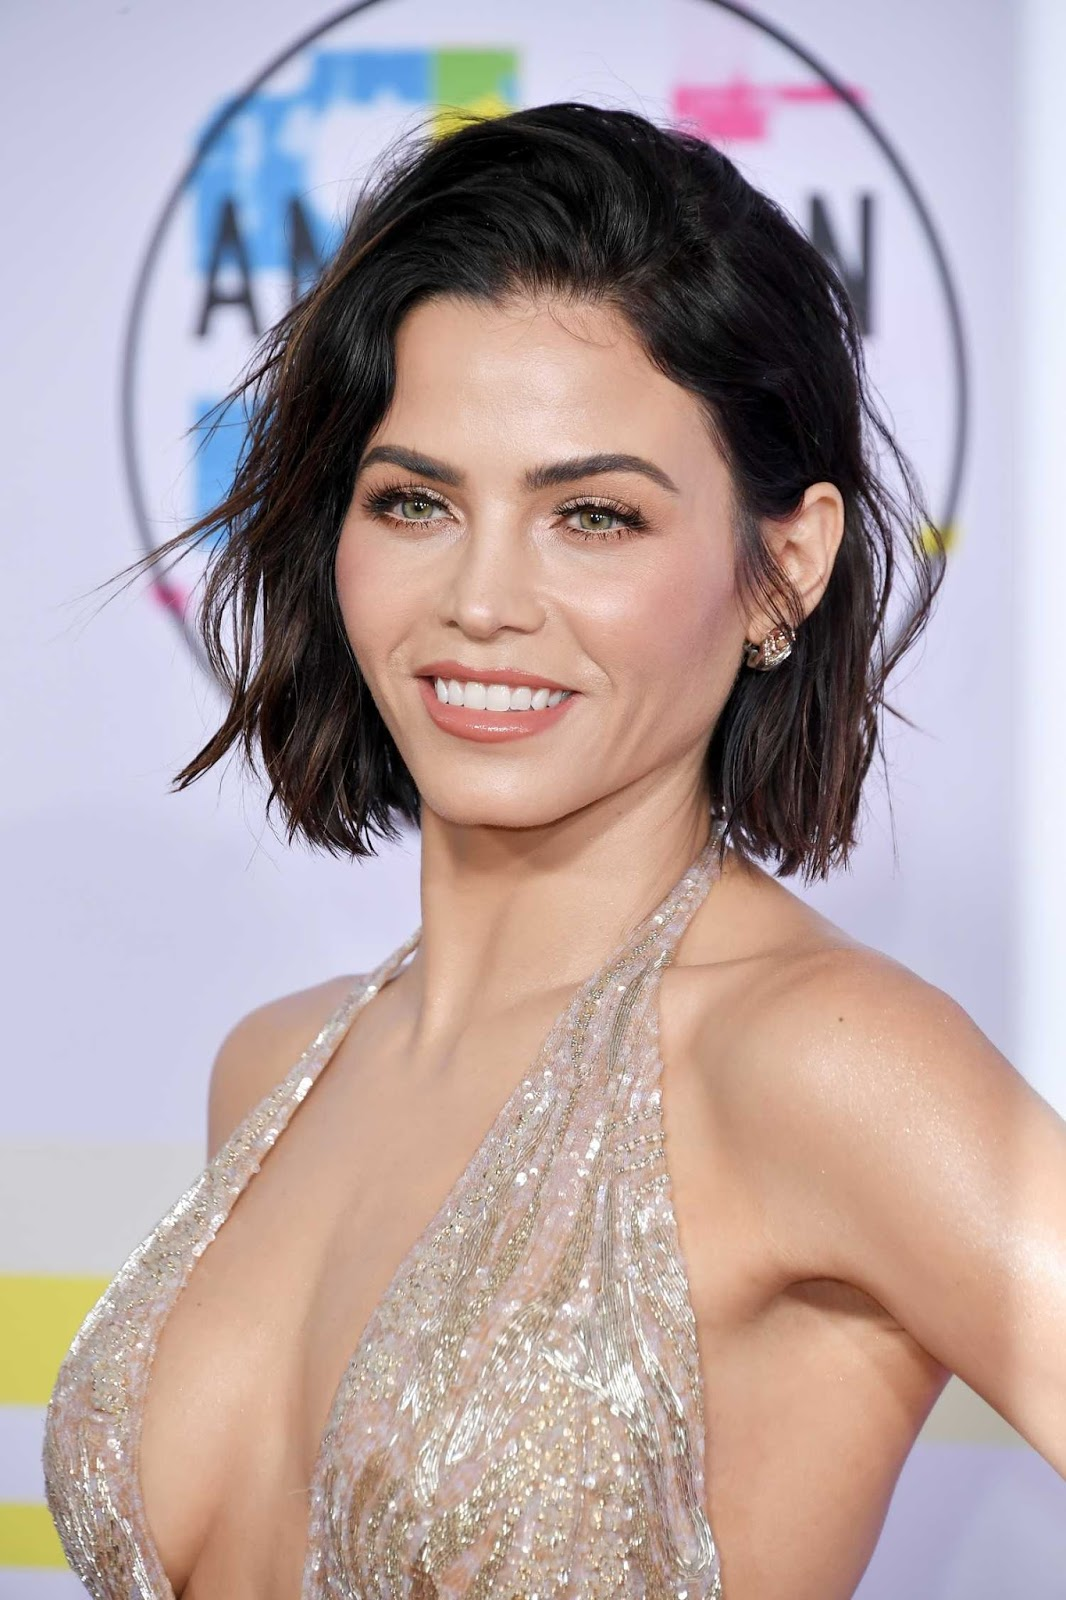 Jenna Dewan Tatum bares ample cleavage at the 2017 AMAs